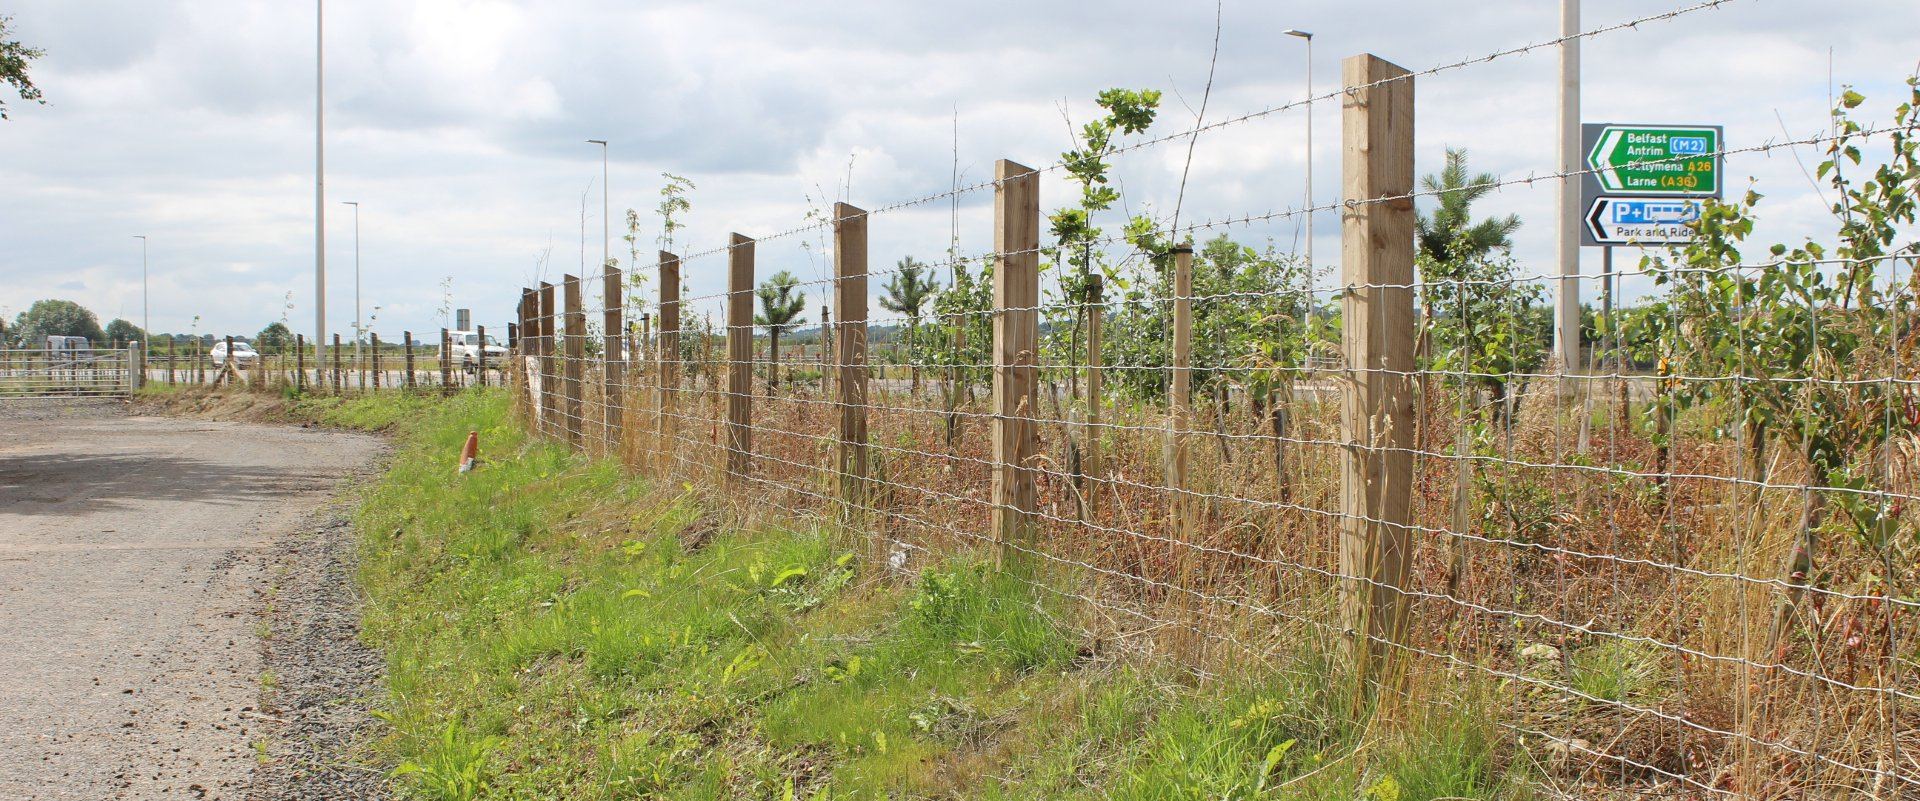 A26 Northern Ireland - Fencing project by Mulligan Fencing